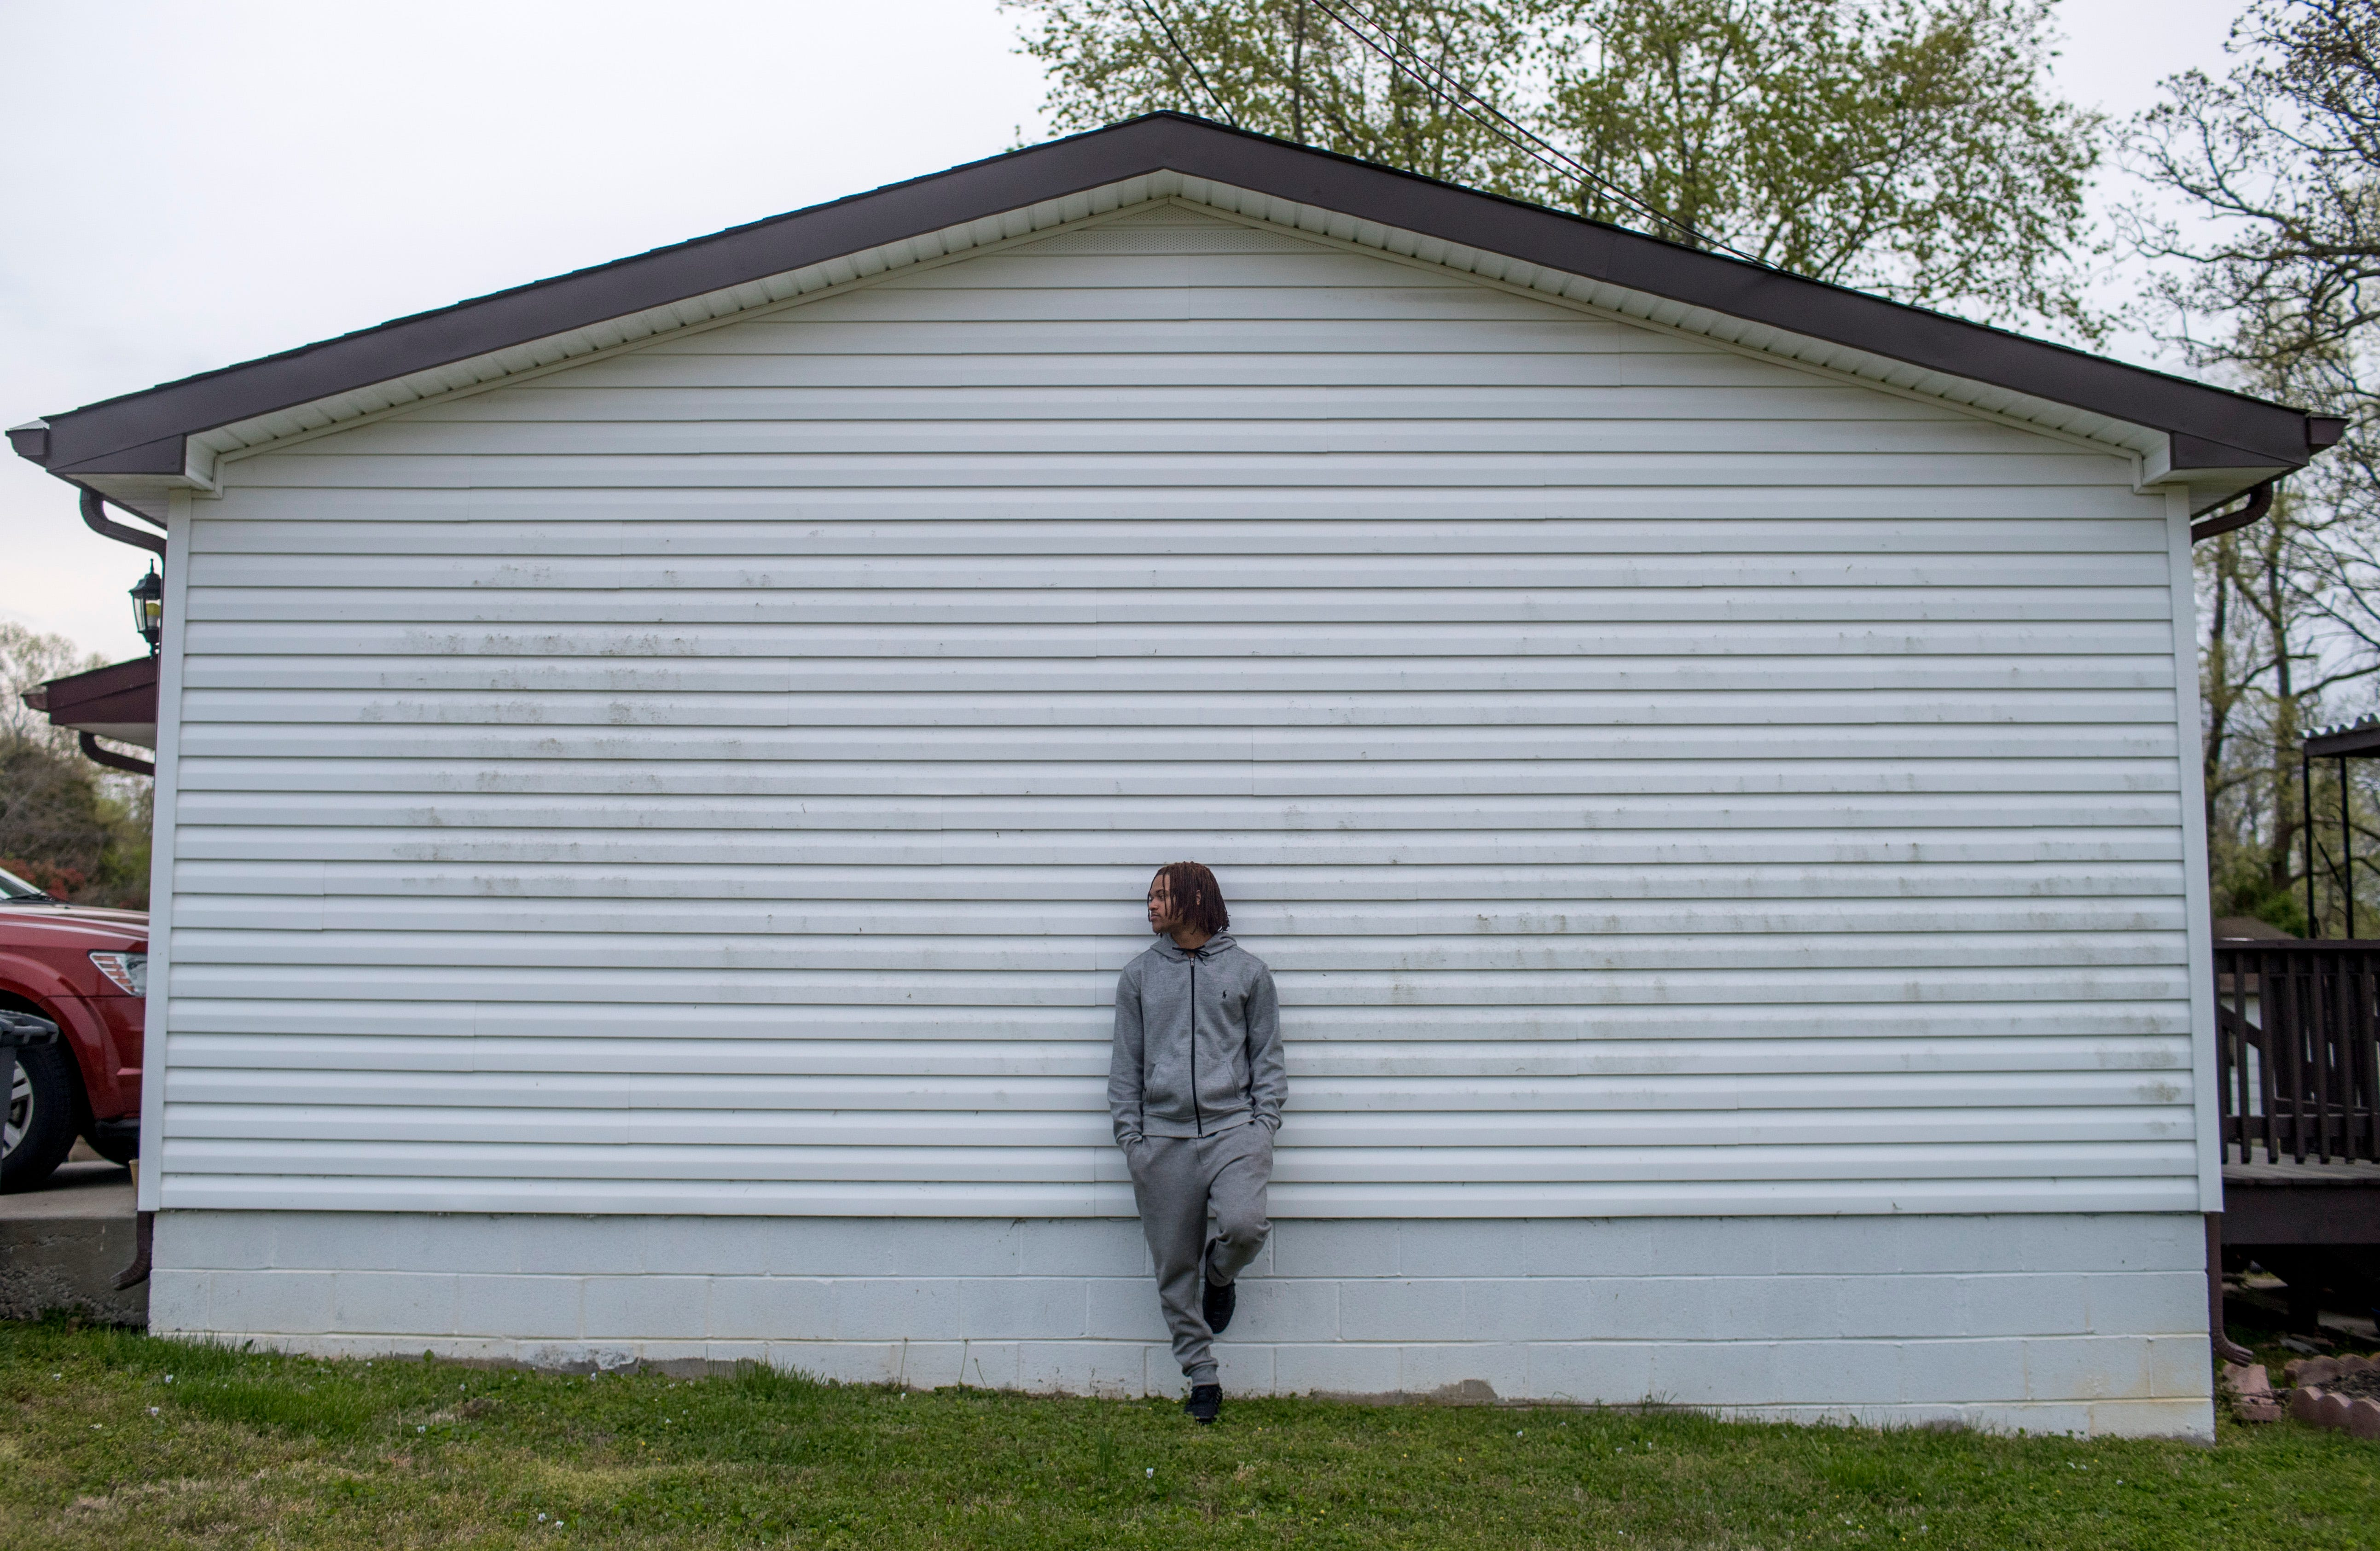 Christopher Williams, a Kenwood senior who will miss out on his last season of track, leans against the outside wall of his home in Clarksville, Tenn., on April 3, 2020.